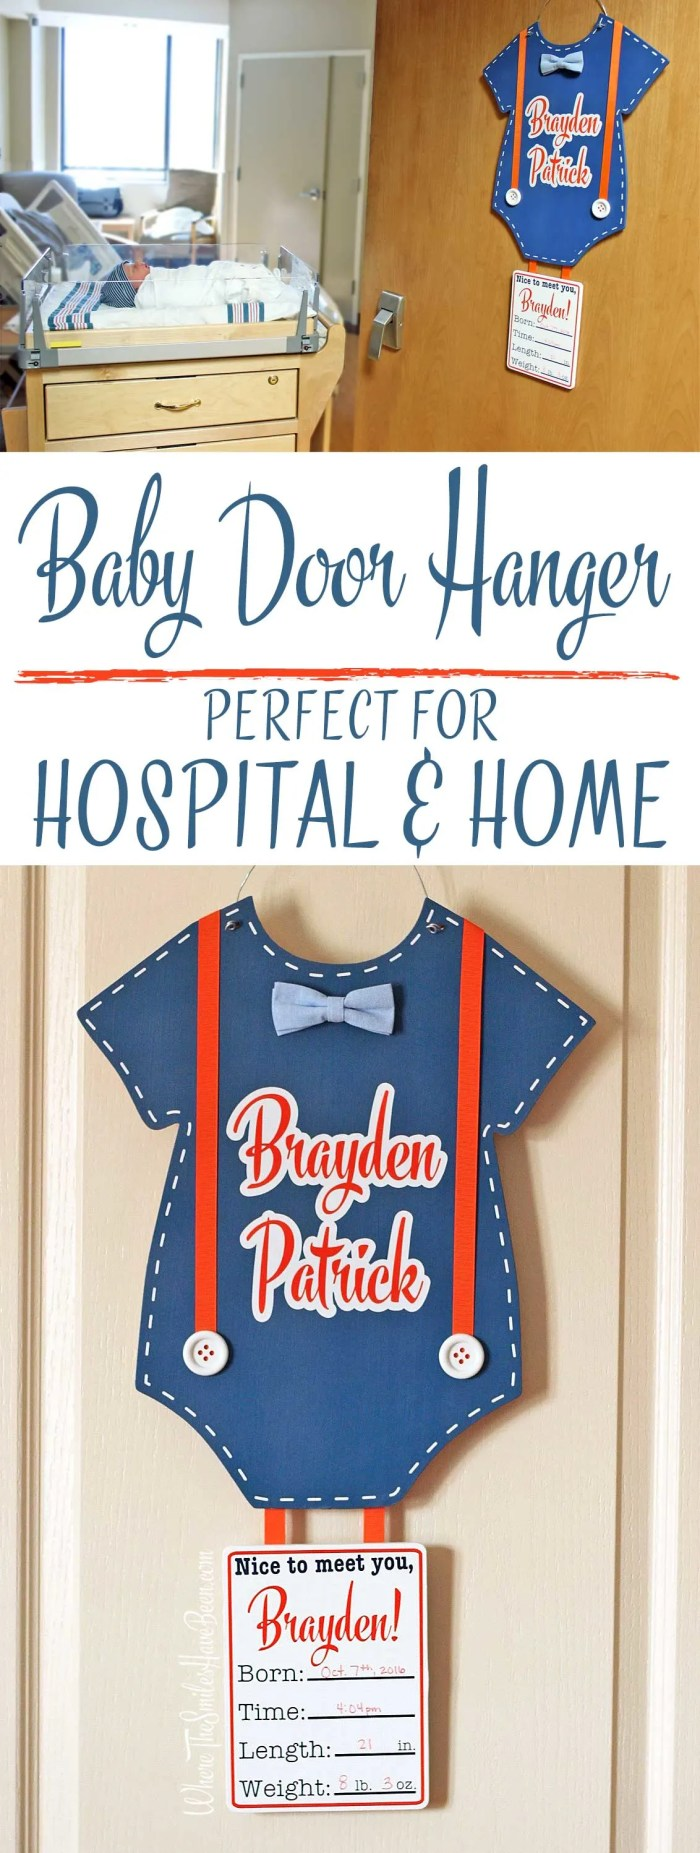 Personalized Baby Door Hanger for Hospital & Home.